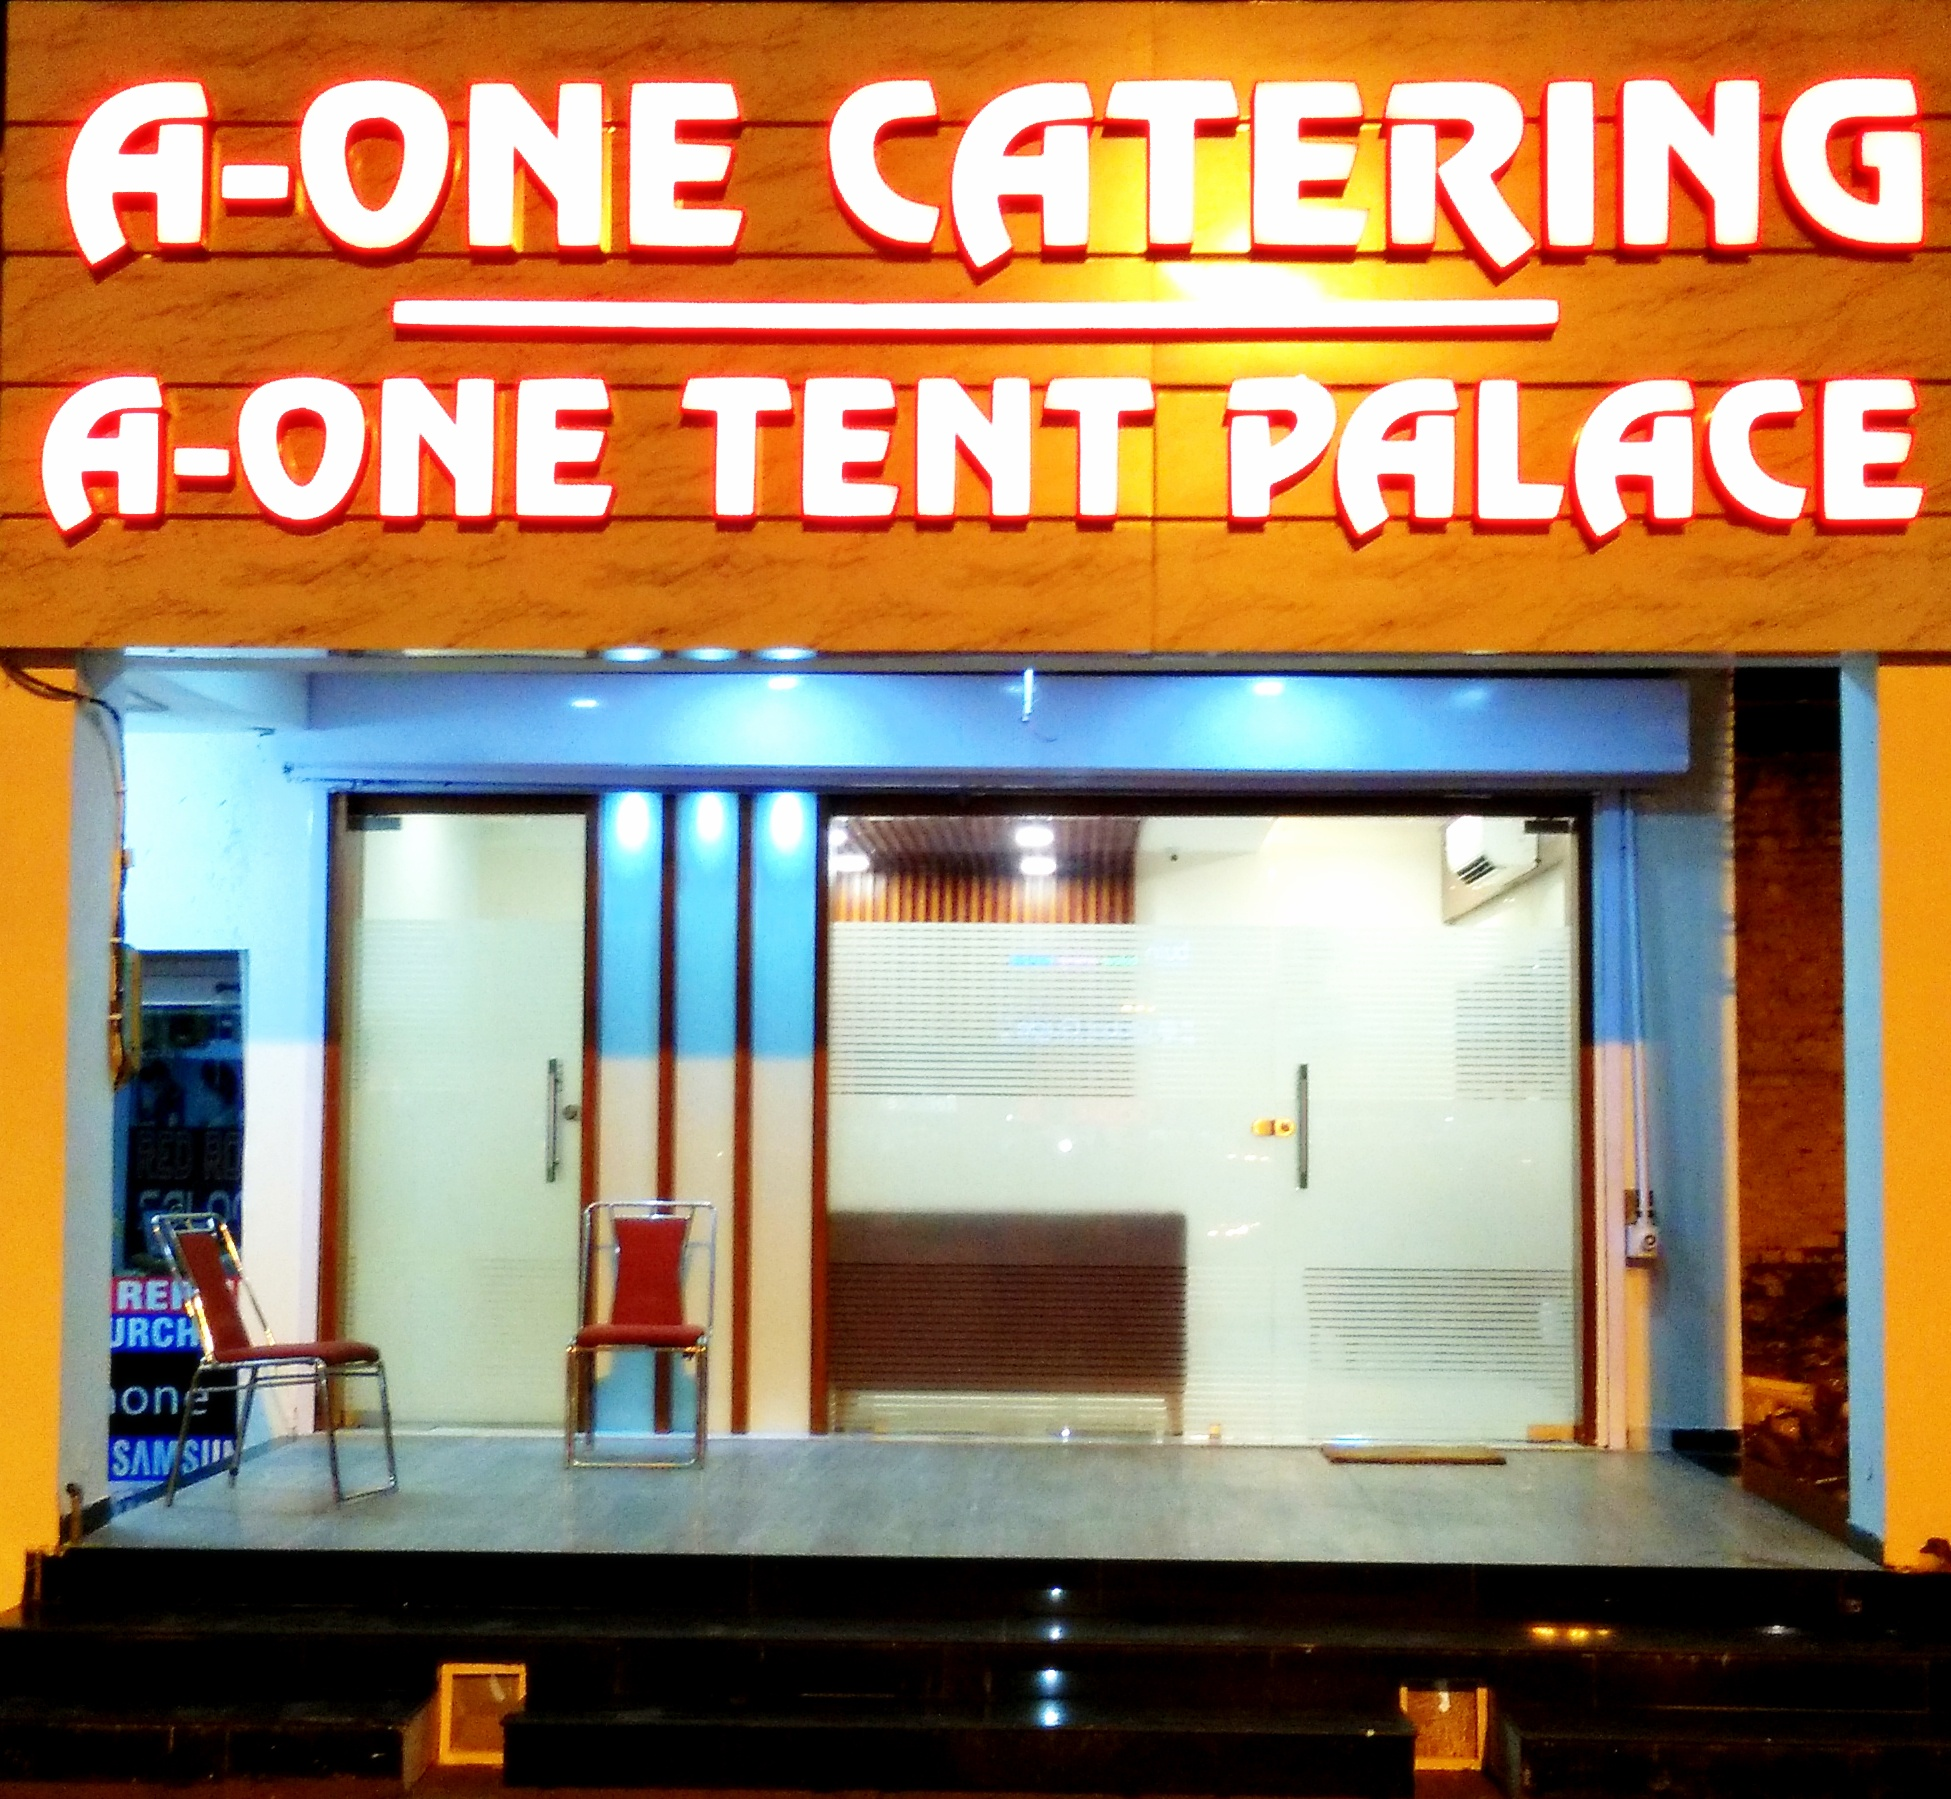 A -ONE CATERING